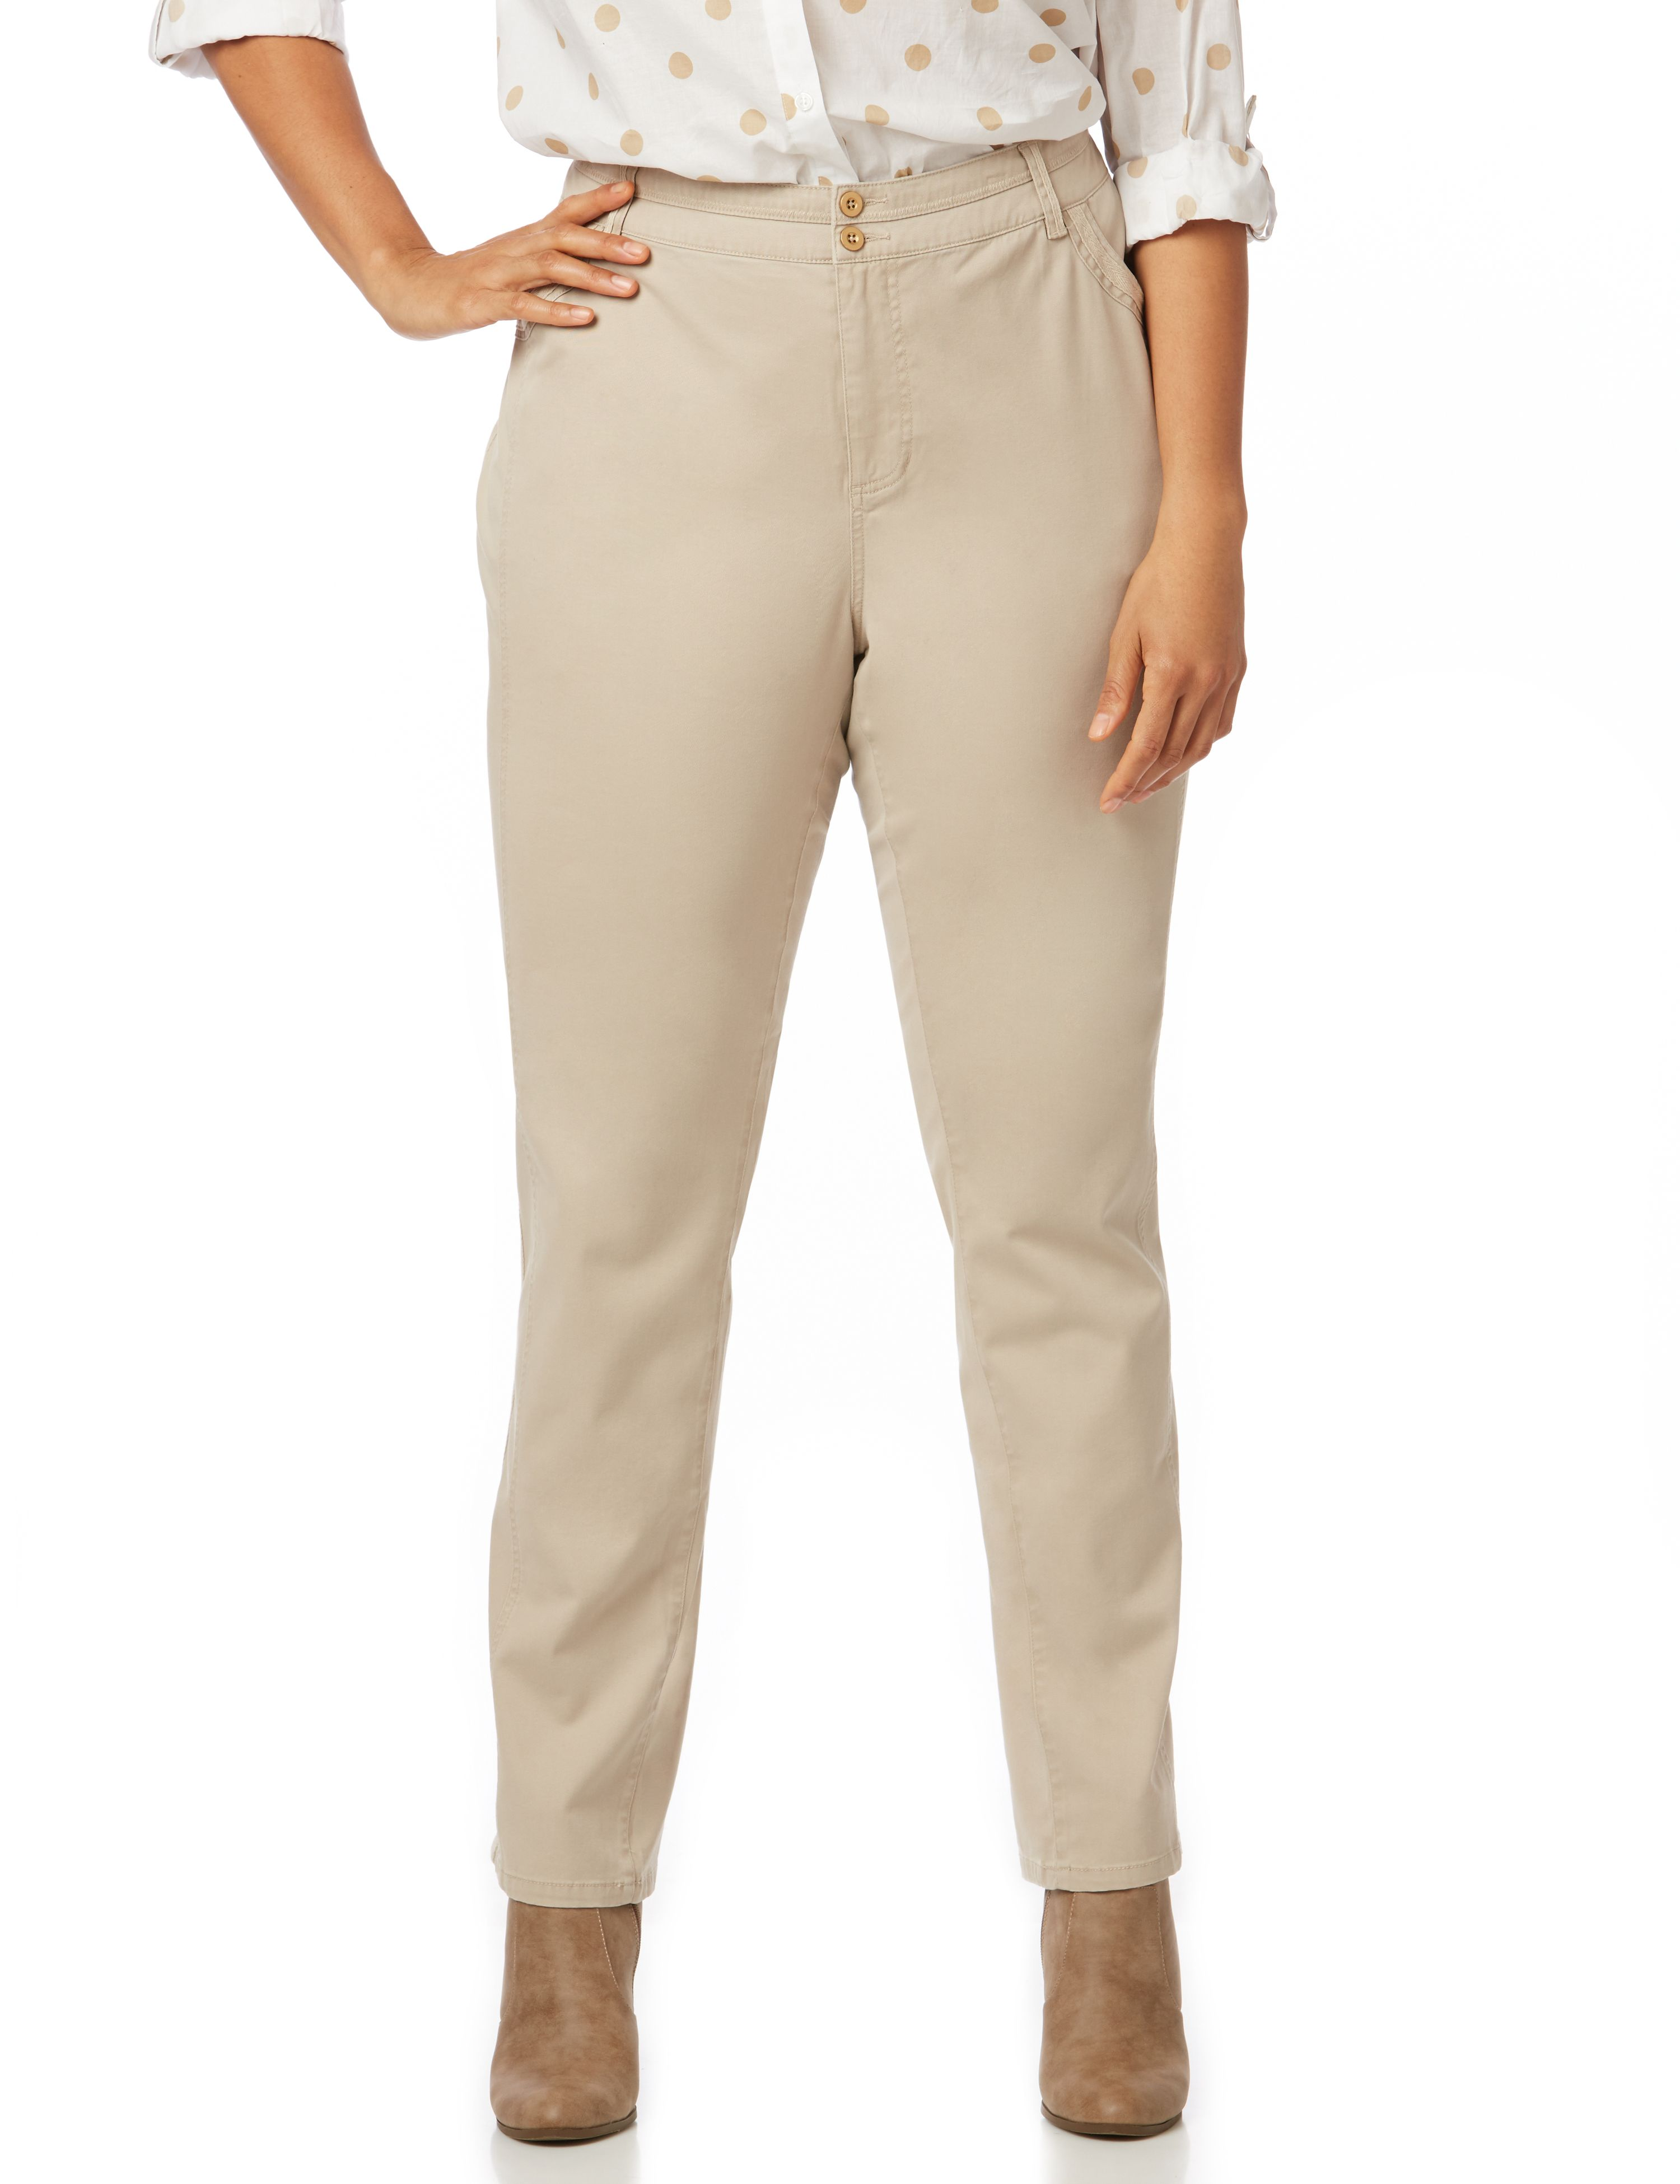 Casual Comfort Pant 1088414 CHINO WITH TWILL TAPE DETAI MP-300092465